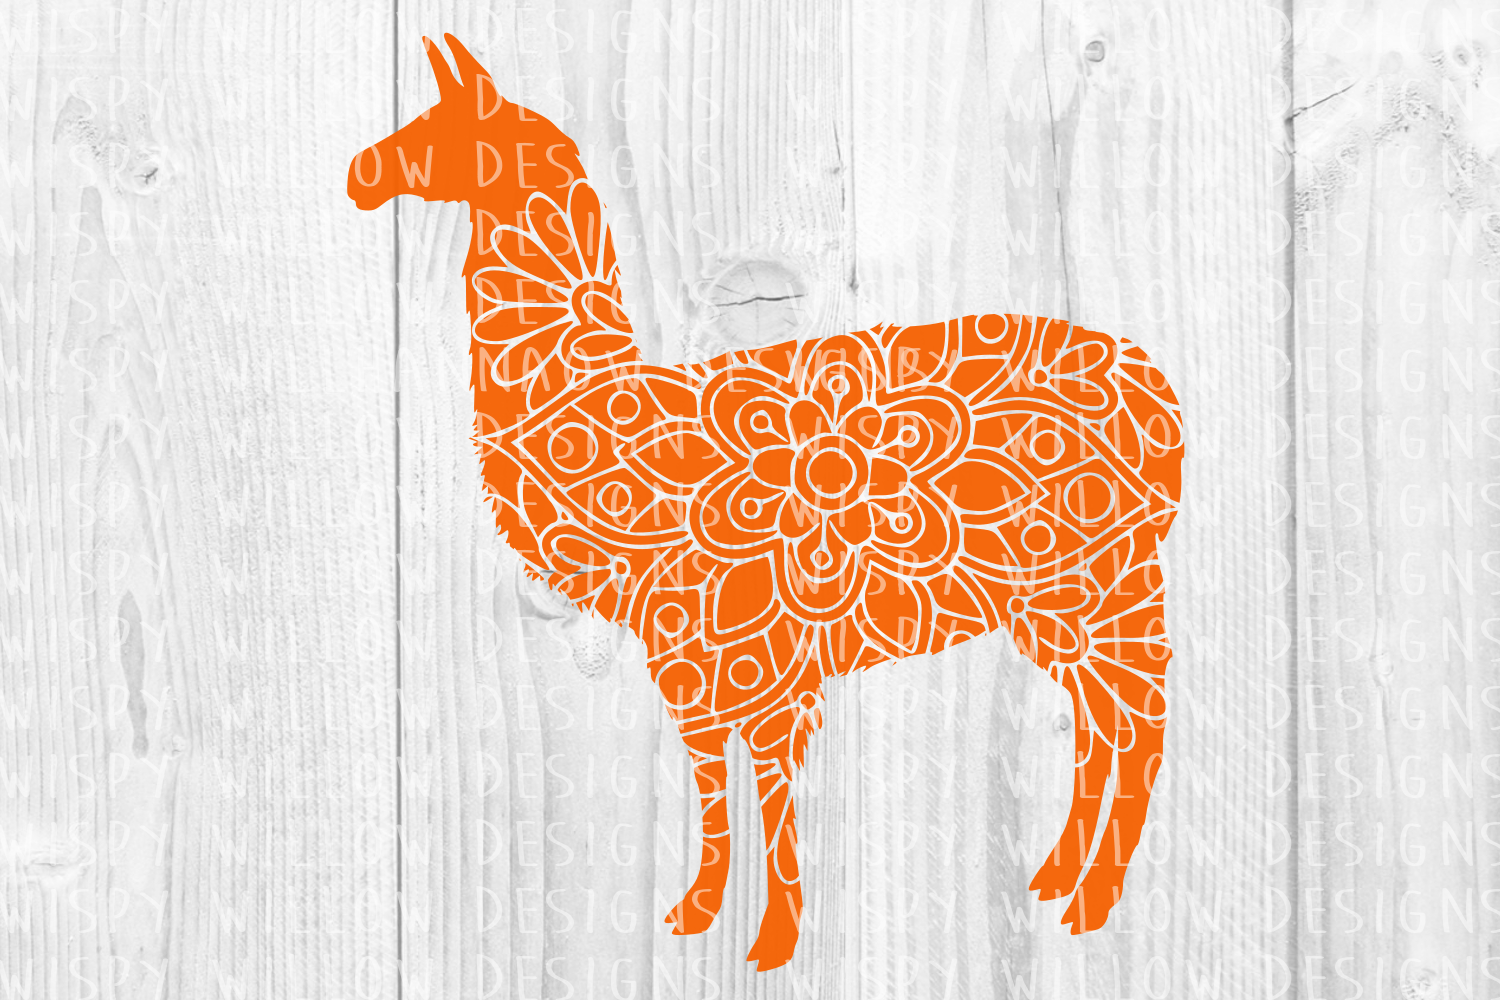 Download Free Llama Floral Mandala Animal Graphic By Wispywillowdesigns for Cricut Explore, Silhouette and other cutting machines.